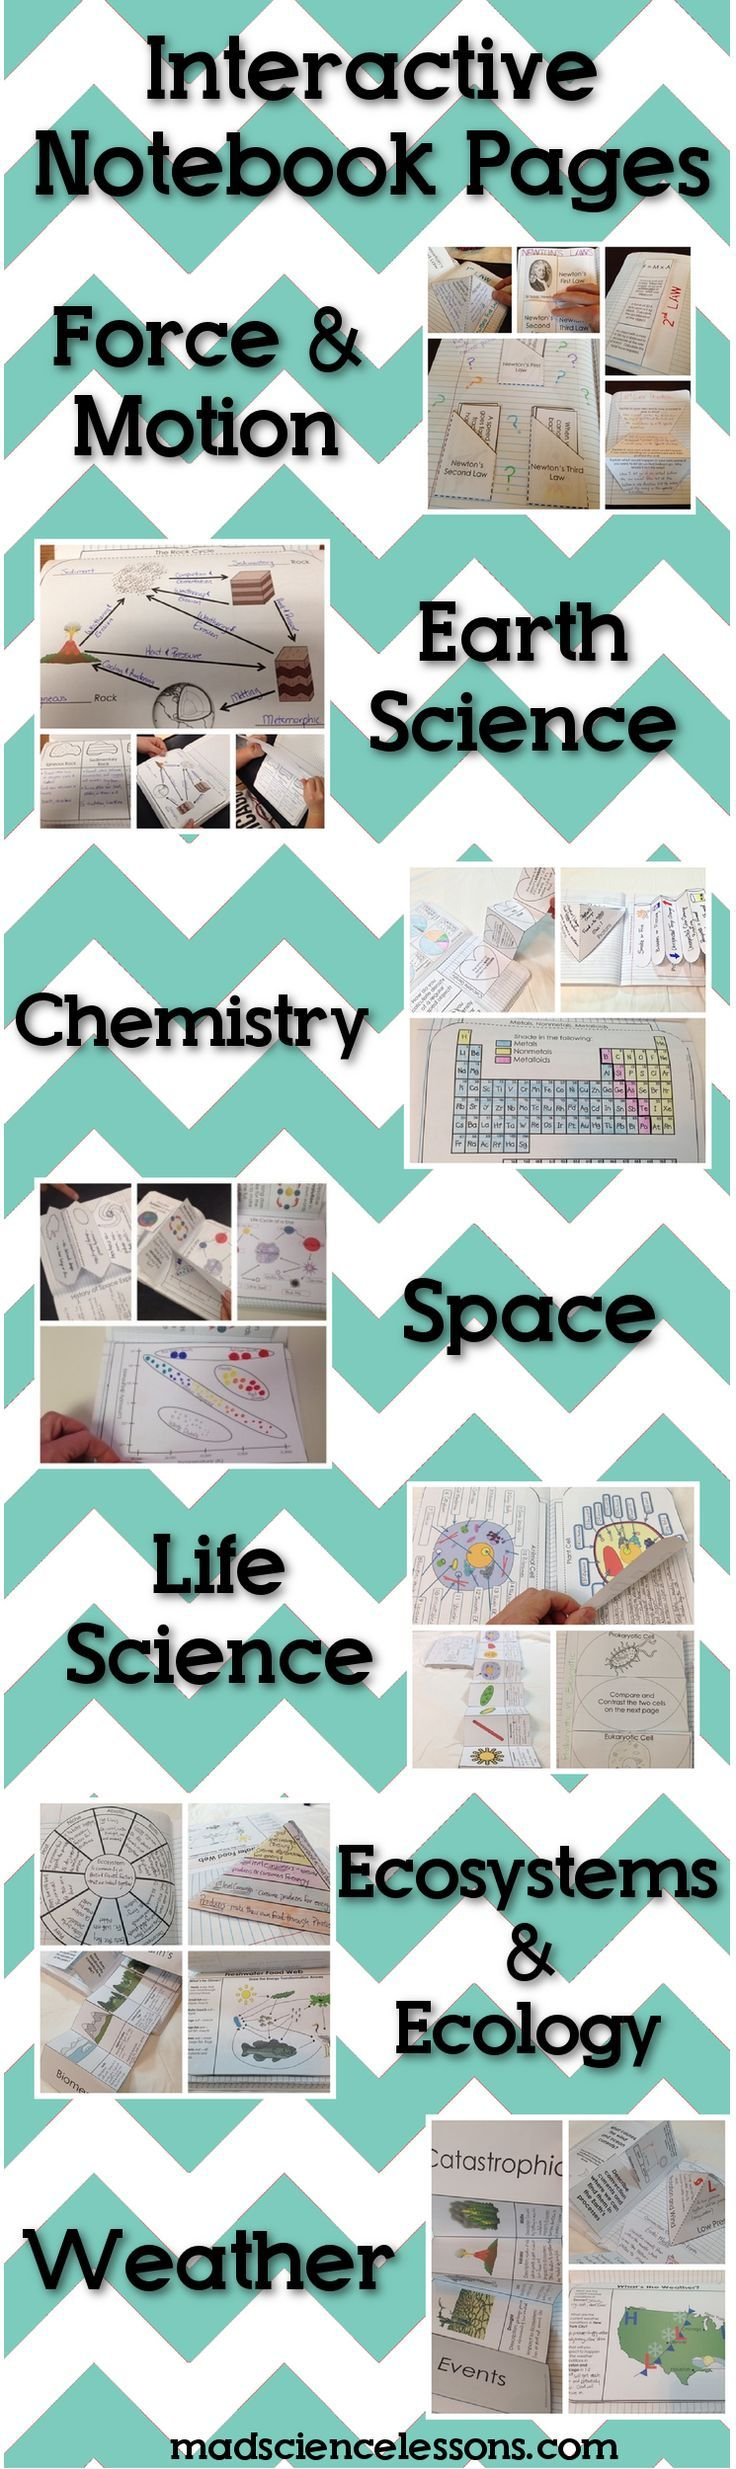 Interactive Notebook Pages for Science Journals -  Loaded with tons of great activities.  Includes all 7 of my best selling science interactive notebooks.